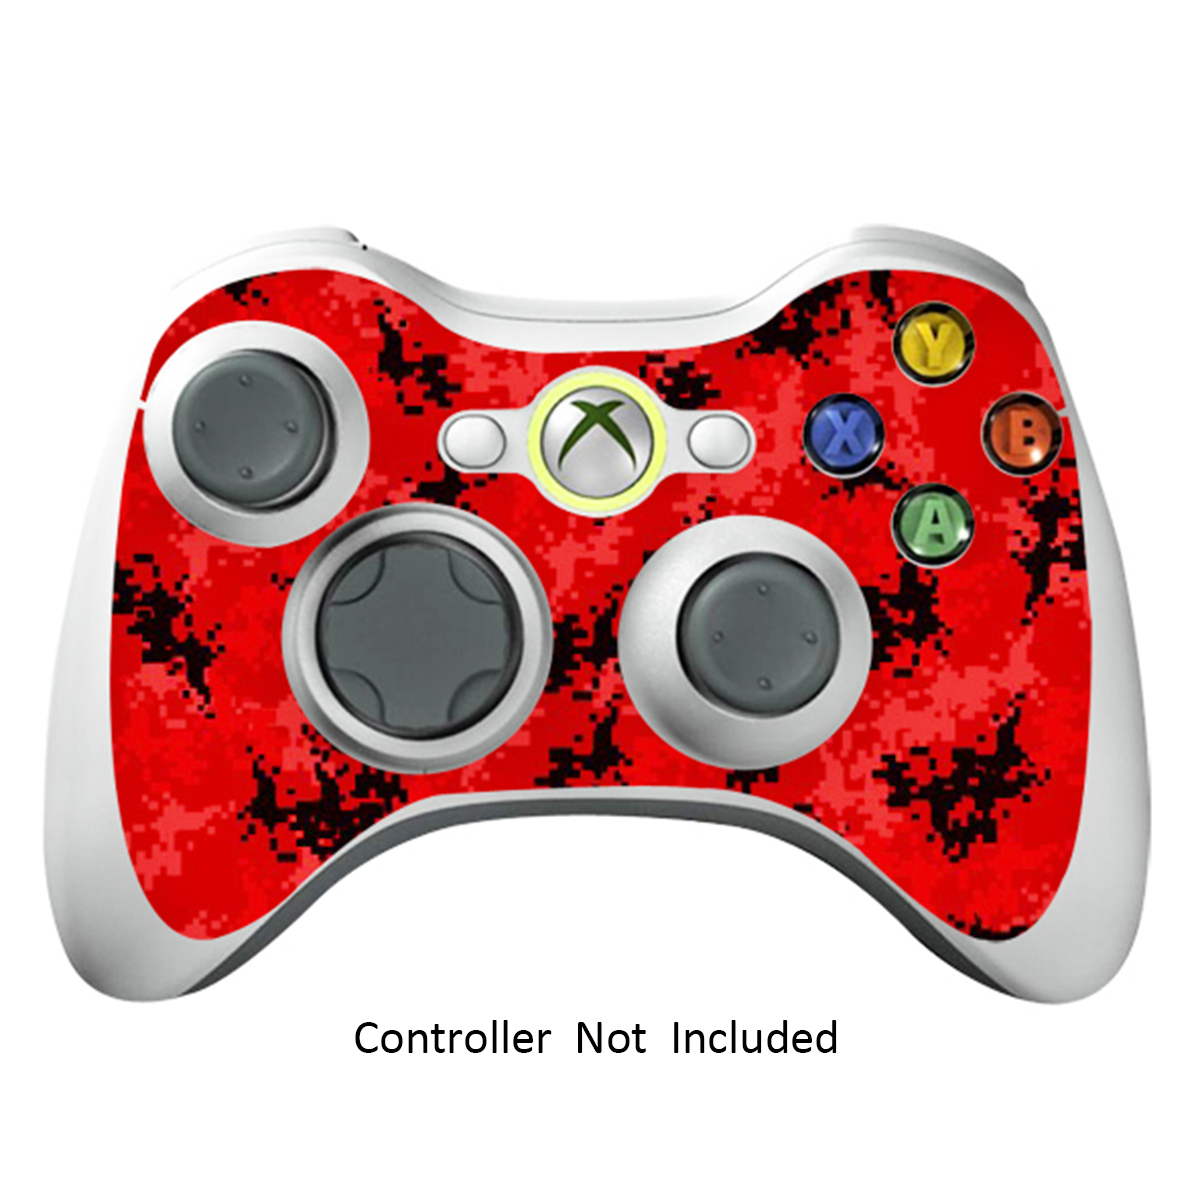 Skin Stickers for Xbox 360 Controller - Vinyl High Gloss Sticker for X360 Slim Wired Wireless Game Controllers - Protectors Stickers Controller Decal - Digicamo Red